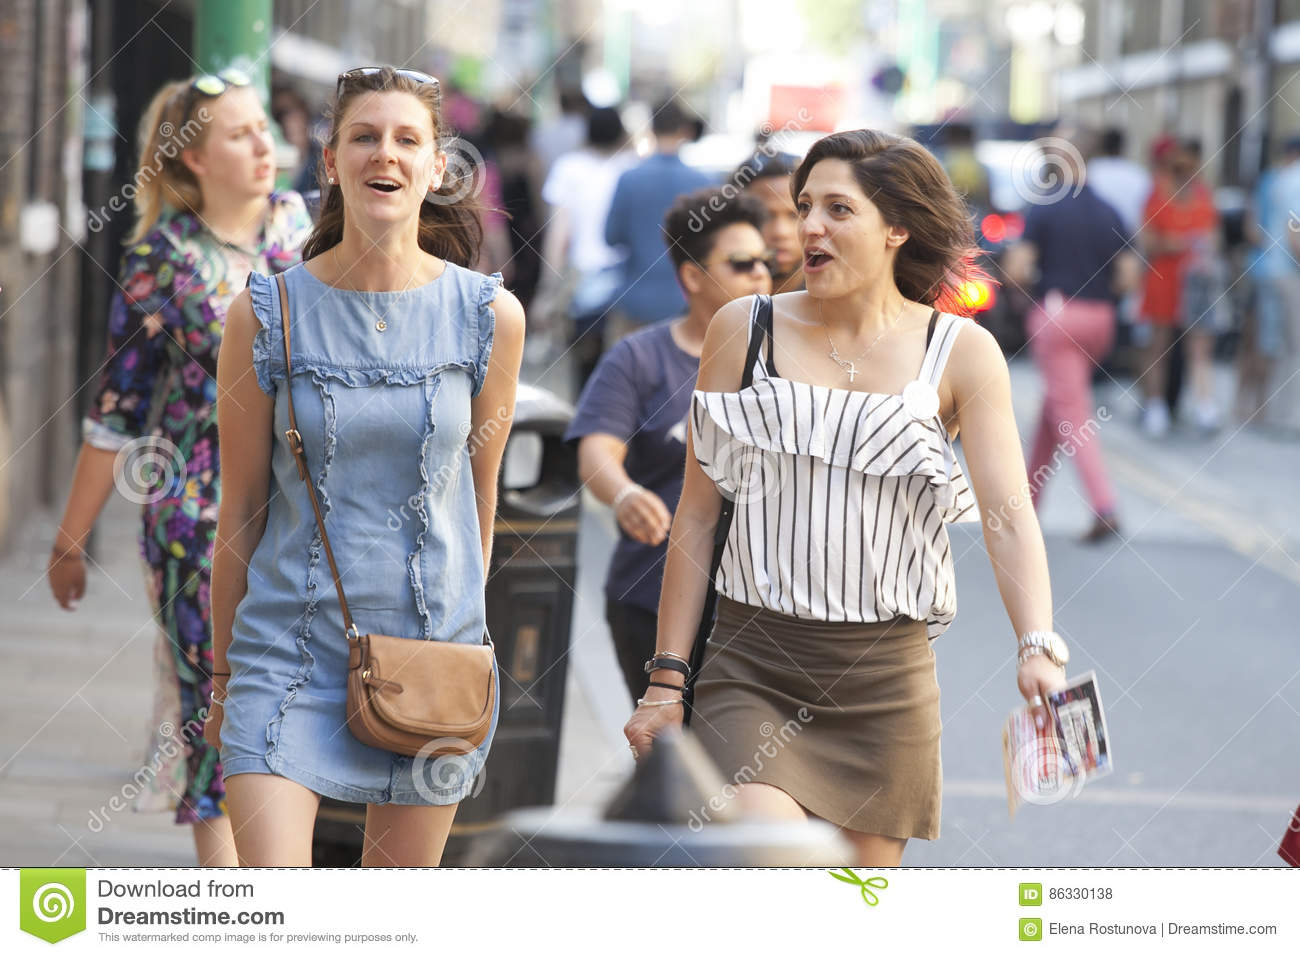 Talking to girls on the street